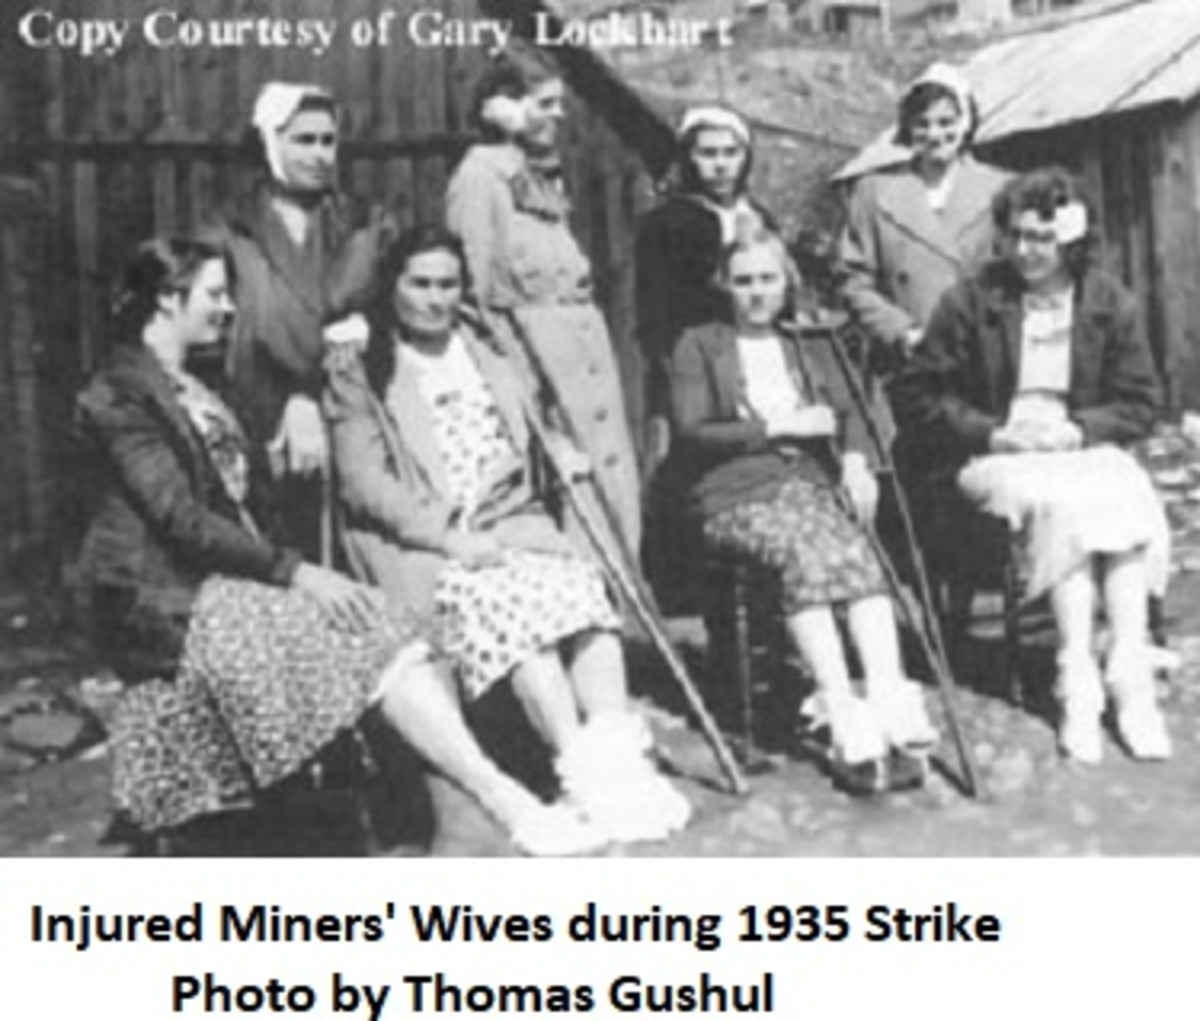 Black Wednesday: Miners' Wives and the 1935 Corbin, B.C., Strike